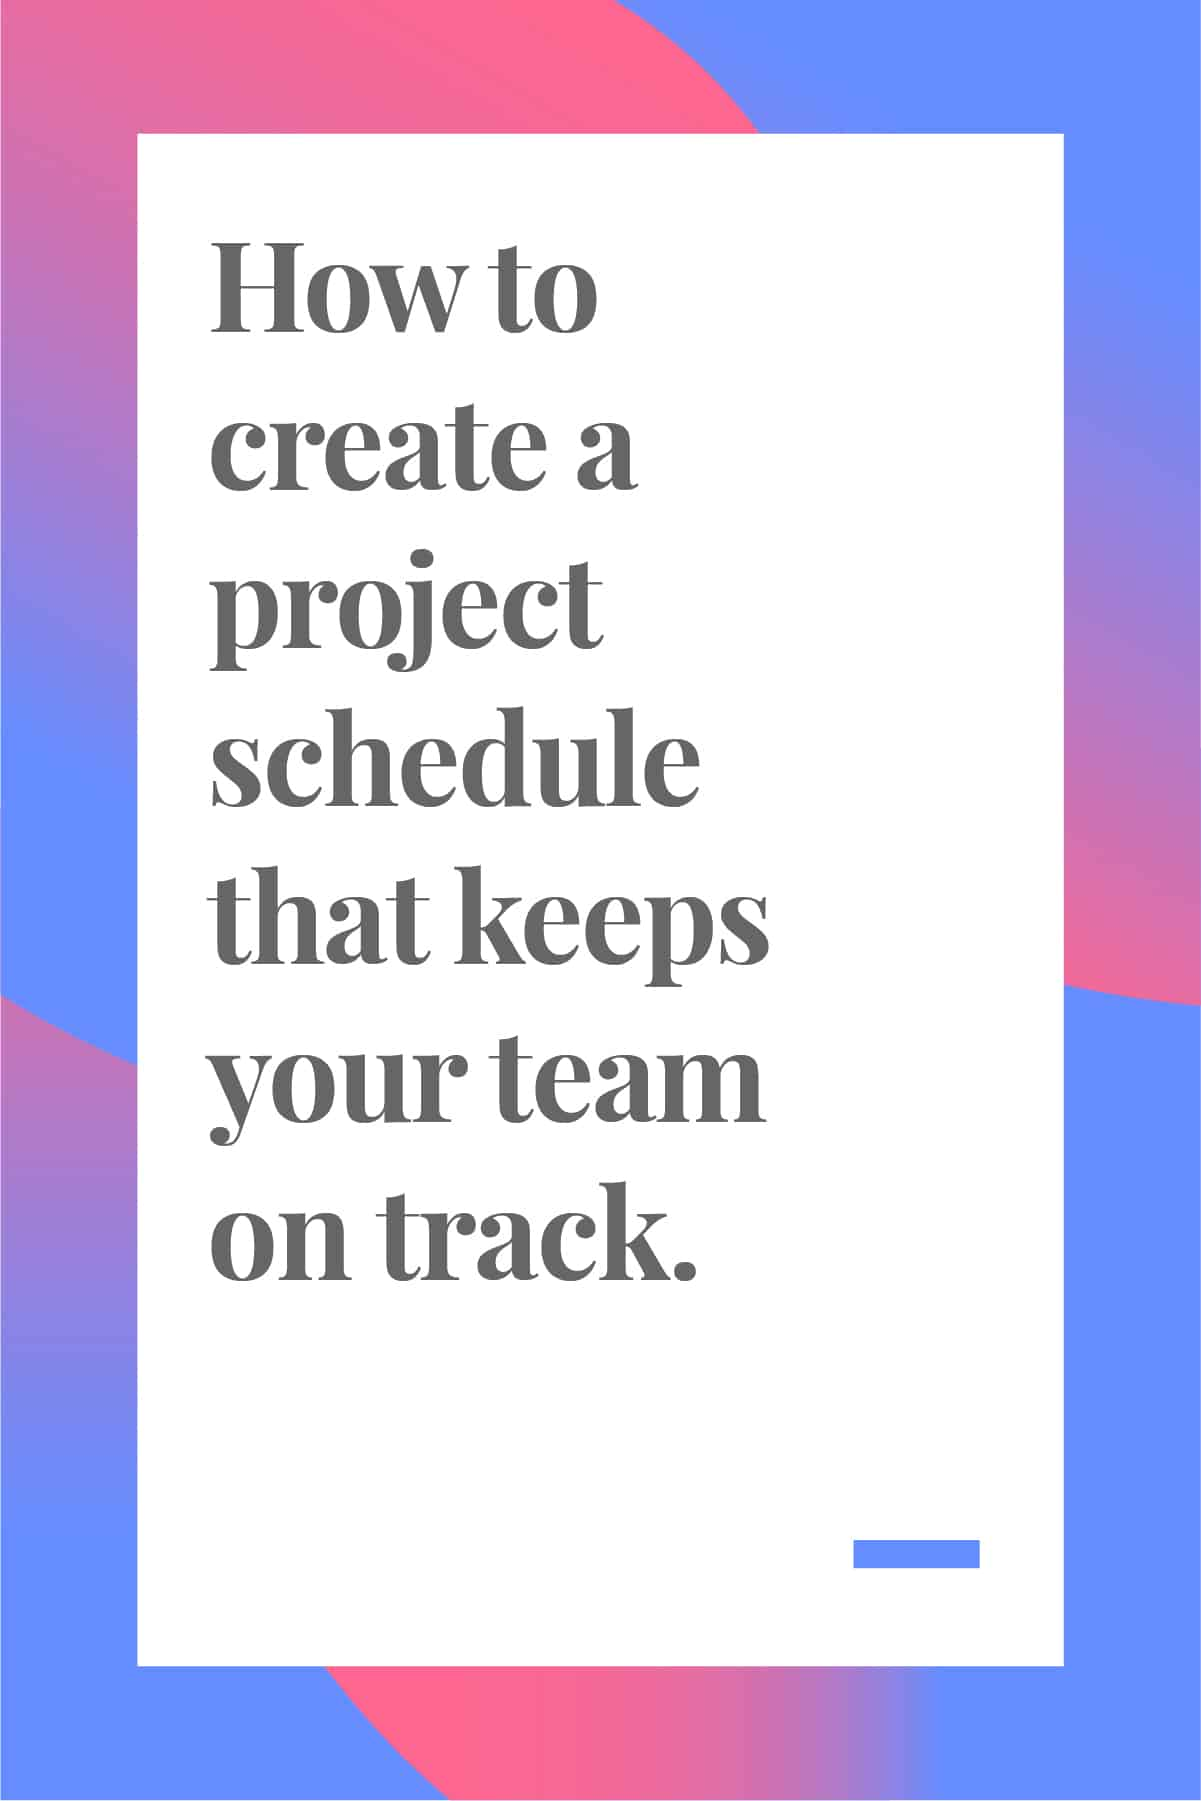 You need to deliver your project on deadline, and the best way to do that is to create a project schedule that keeps all team members on track. Click through to find out how. #projectmanagement #projectmanager